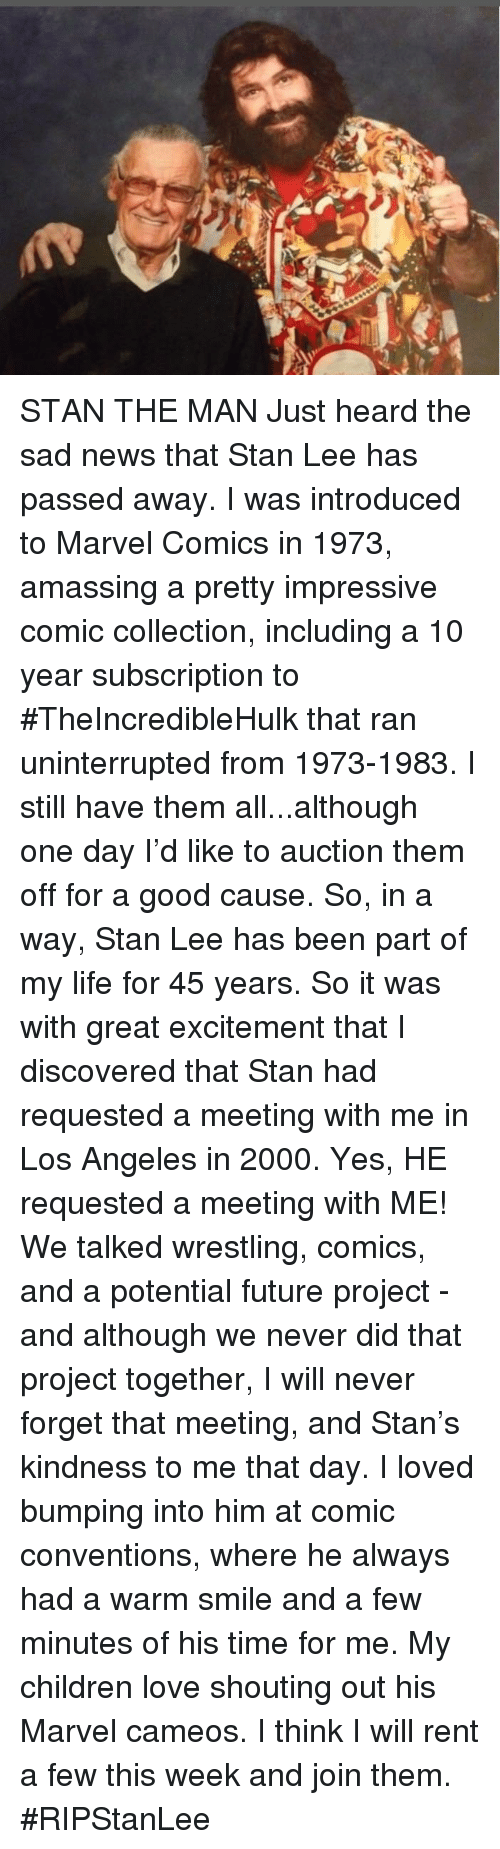 Children, Future, and Life: STAN THE MAN  Just heard the sad news that Stan Lee has passed away. I was introduced to Marvel Comics in 1973, amassing a pretty impressive comic collection, including a 10 year  subscription to #TheIncredibleHulk that ran uninterrupted from 1973-1983. I still have them all...although one day I'd like to auction them off for a good cause.  So, in a way, Stan Lee has been part of my life for 45 years.  So it was with great excitement that I discovered that Stan  had requested a meeting with me in Los Angeles in 2000. Yes, HE requested a meeting with ME!  We talked wrestling, comics, and a potential future project - and although we never did that project together, I will never forget that meeting, and Stan's kindness to me that day. I loved bumping into him at comic conventions, where he always had a warm smile and a few minutes of his time for me.   My children love shouting out his Marvel cameos. I think I will rent a few this week and join them. #RIPStanLee